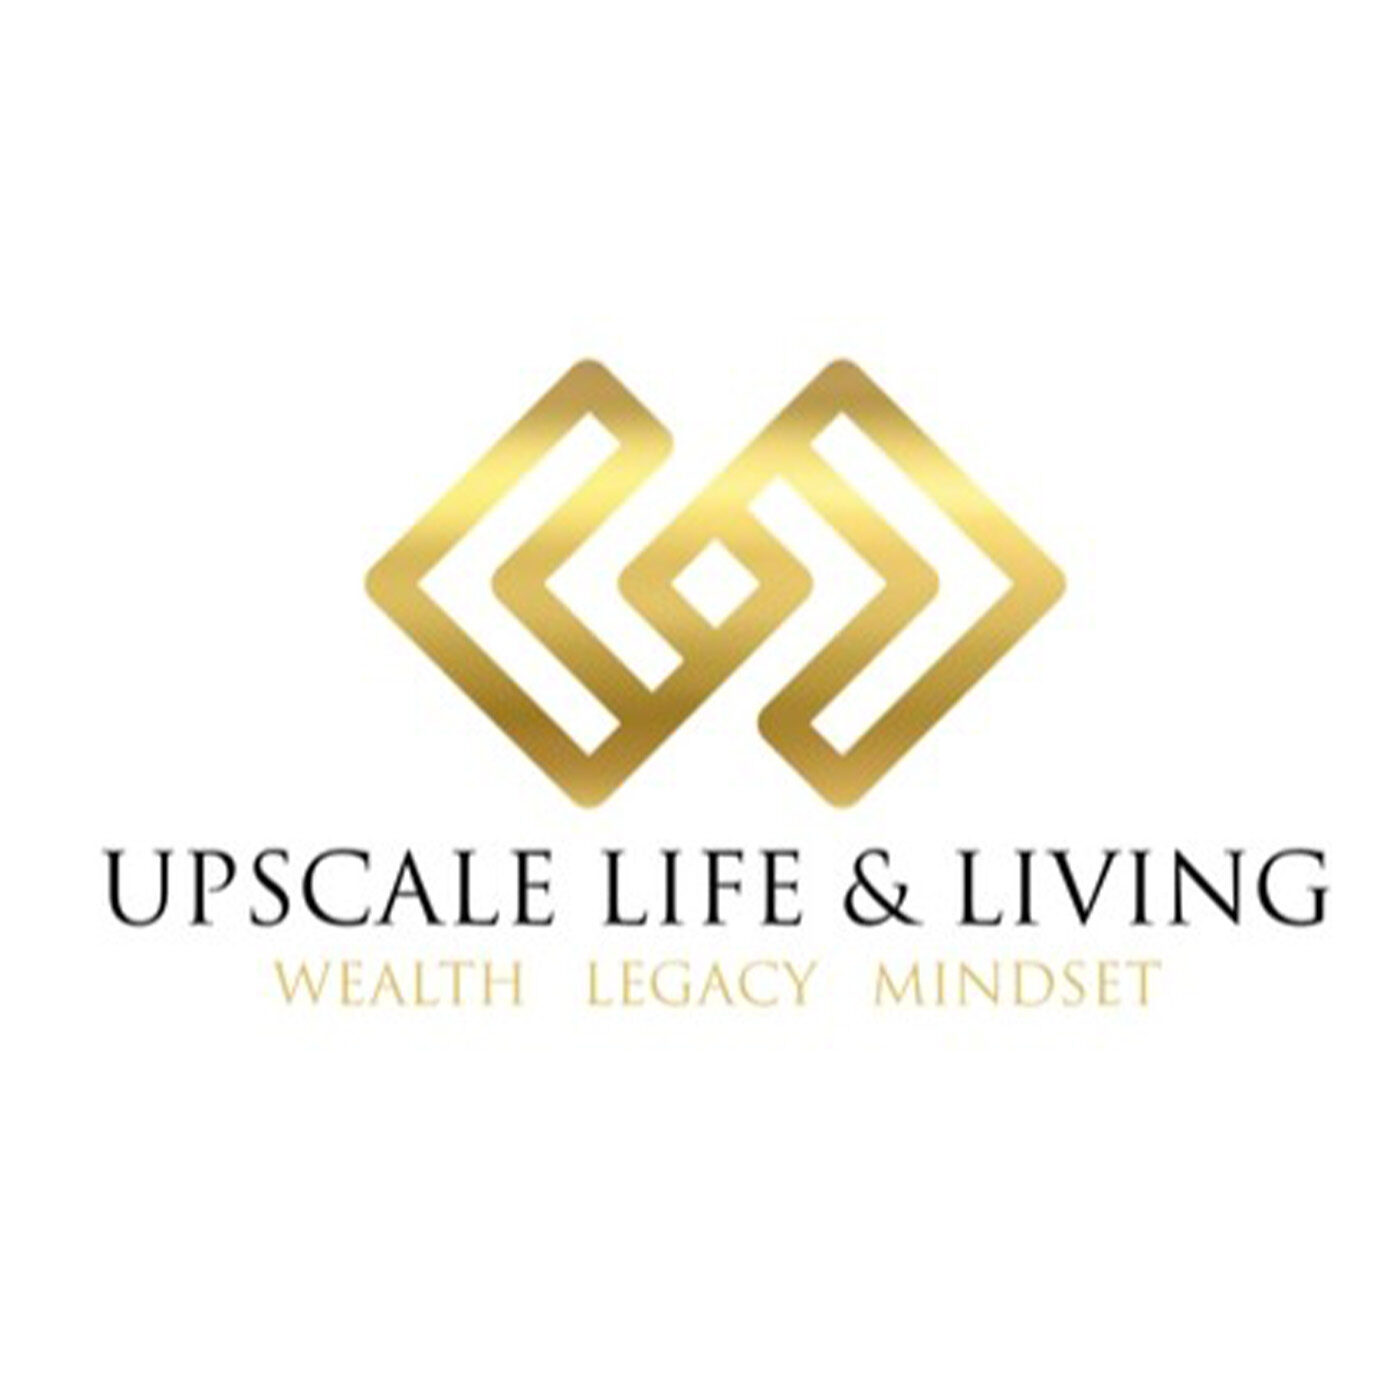 Upscale Life & Living Institute LLC